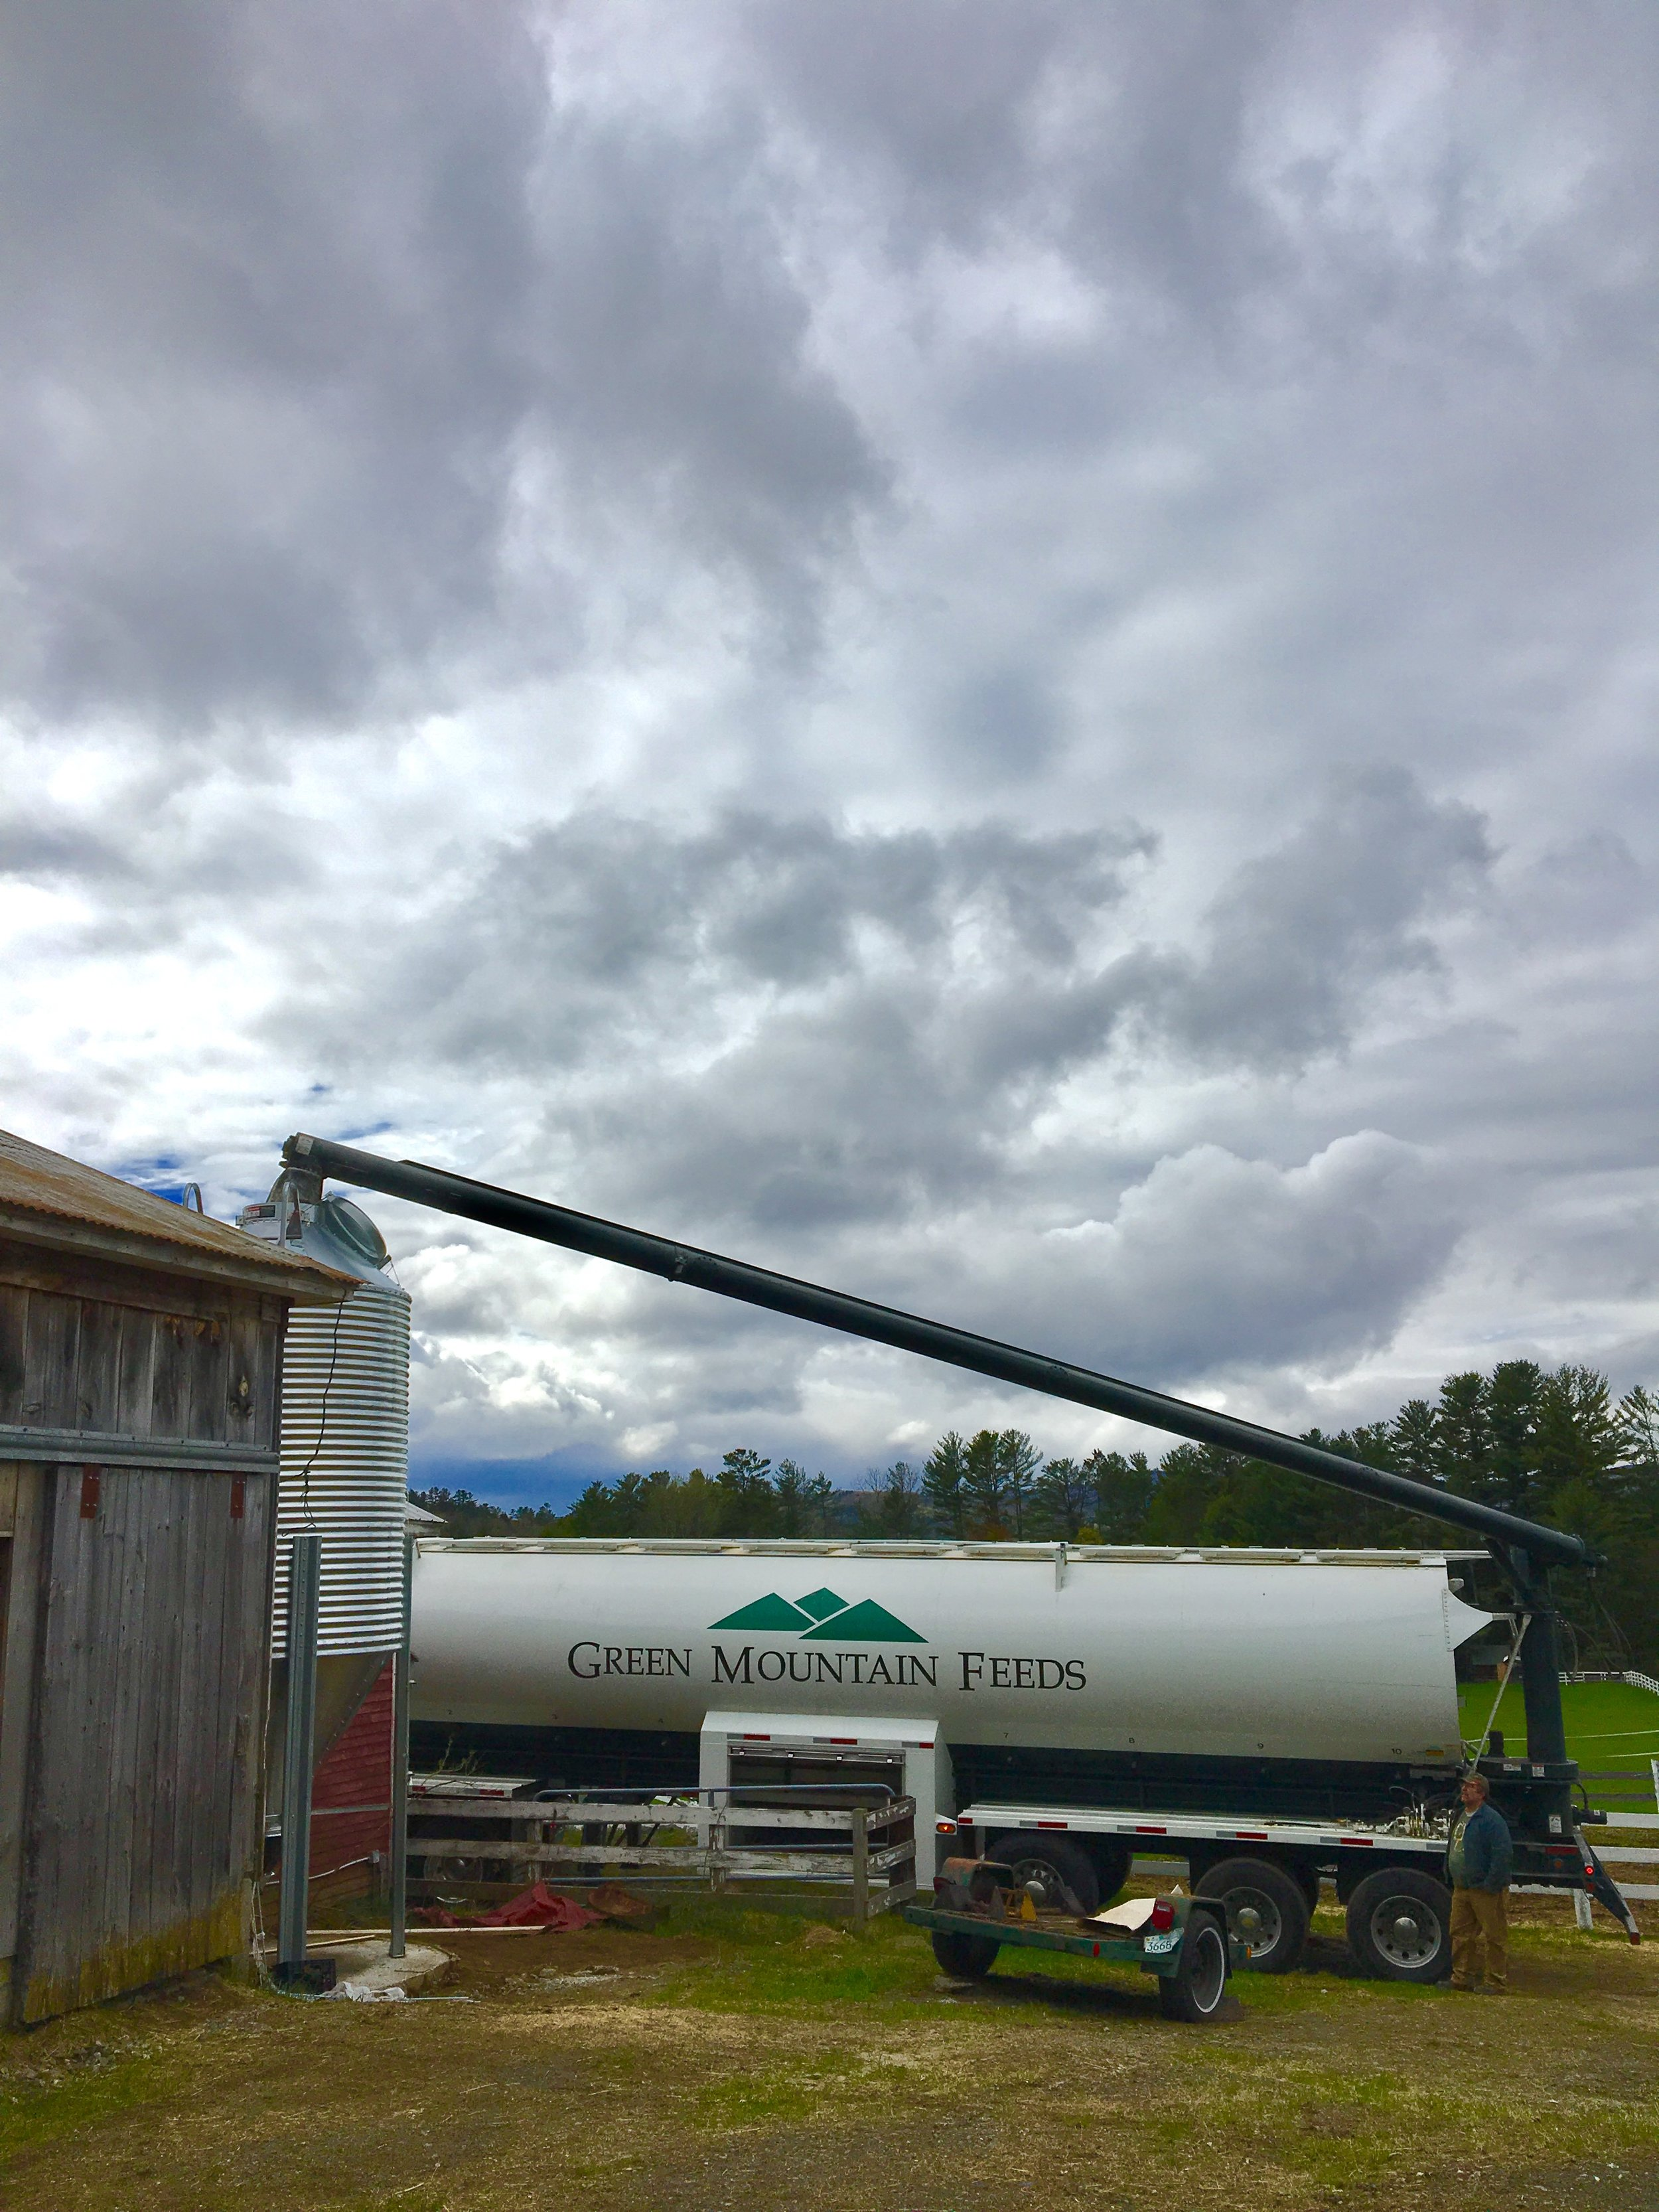 First delivery for the new silo: Green Mountain Feeds! NON-GMO pig feed!